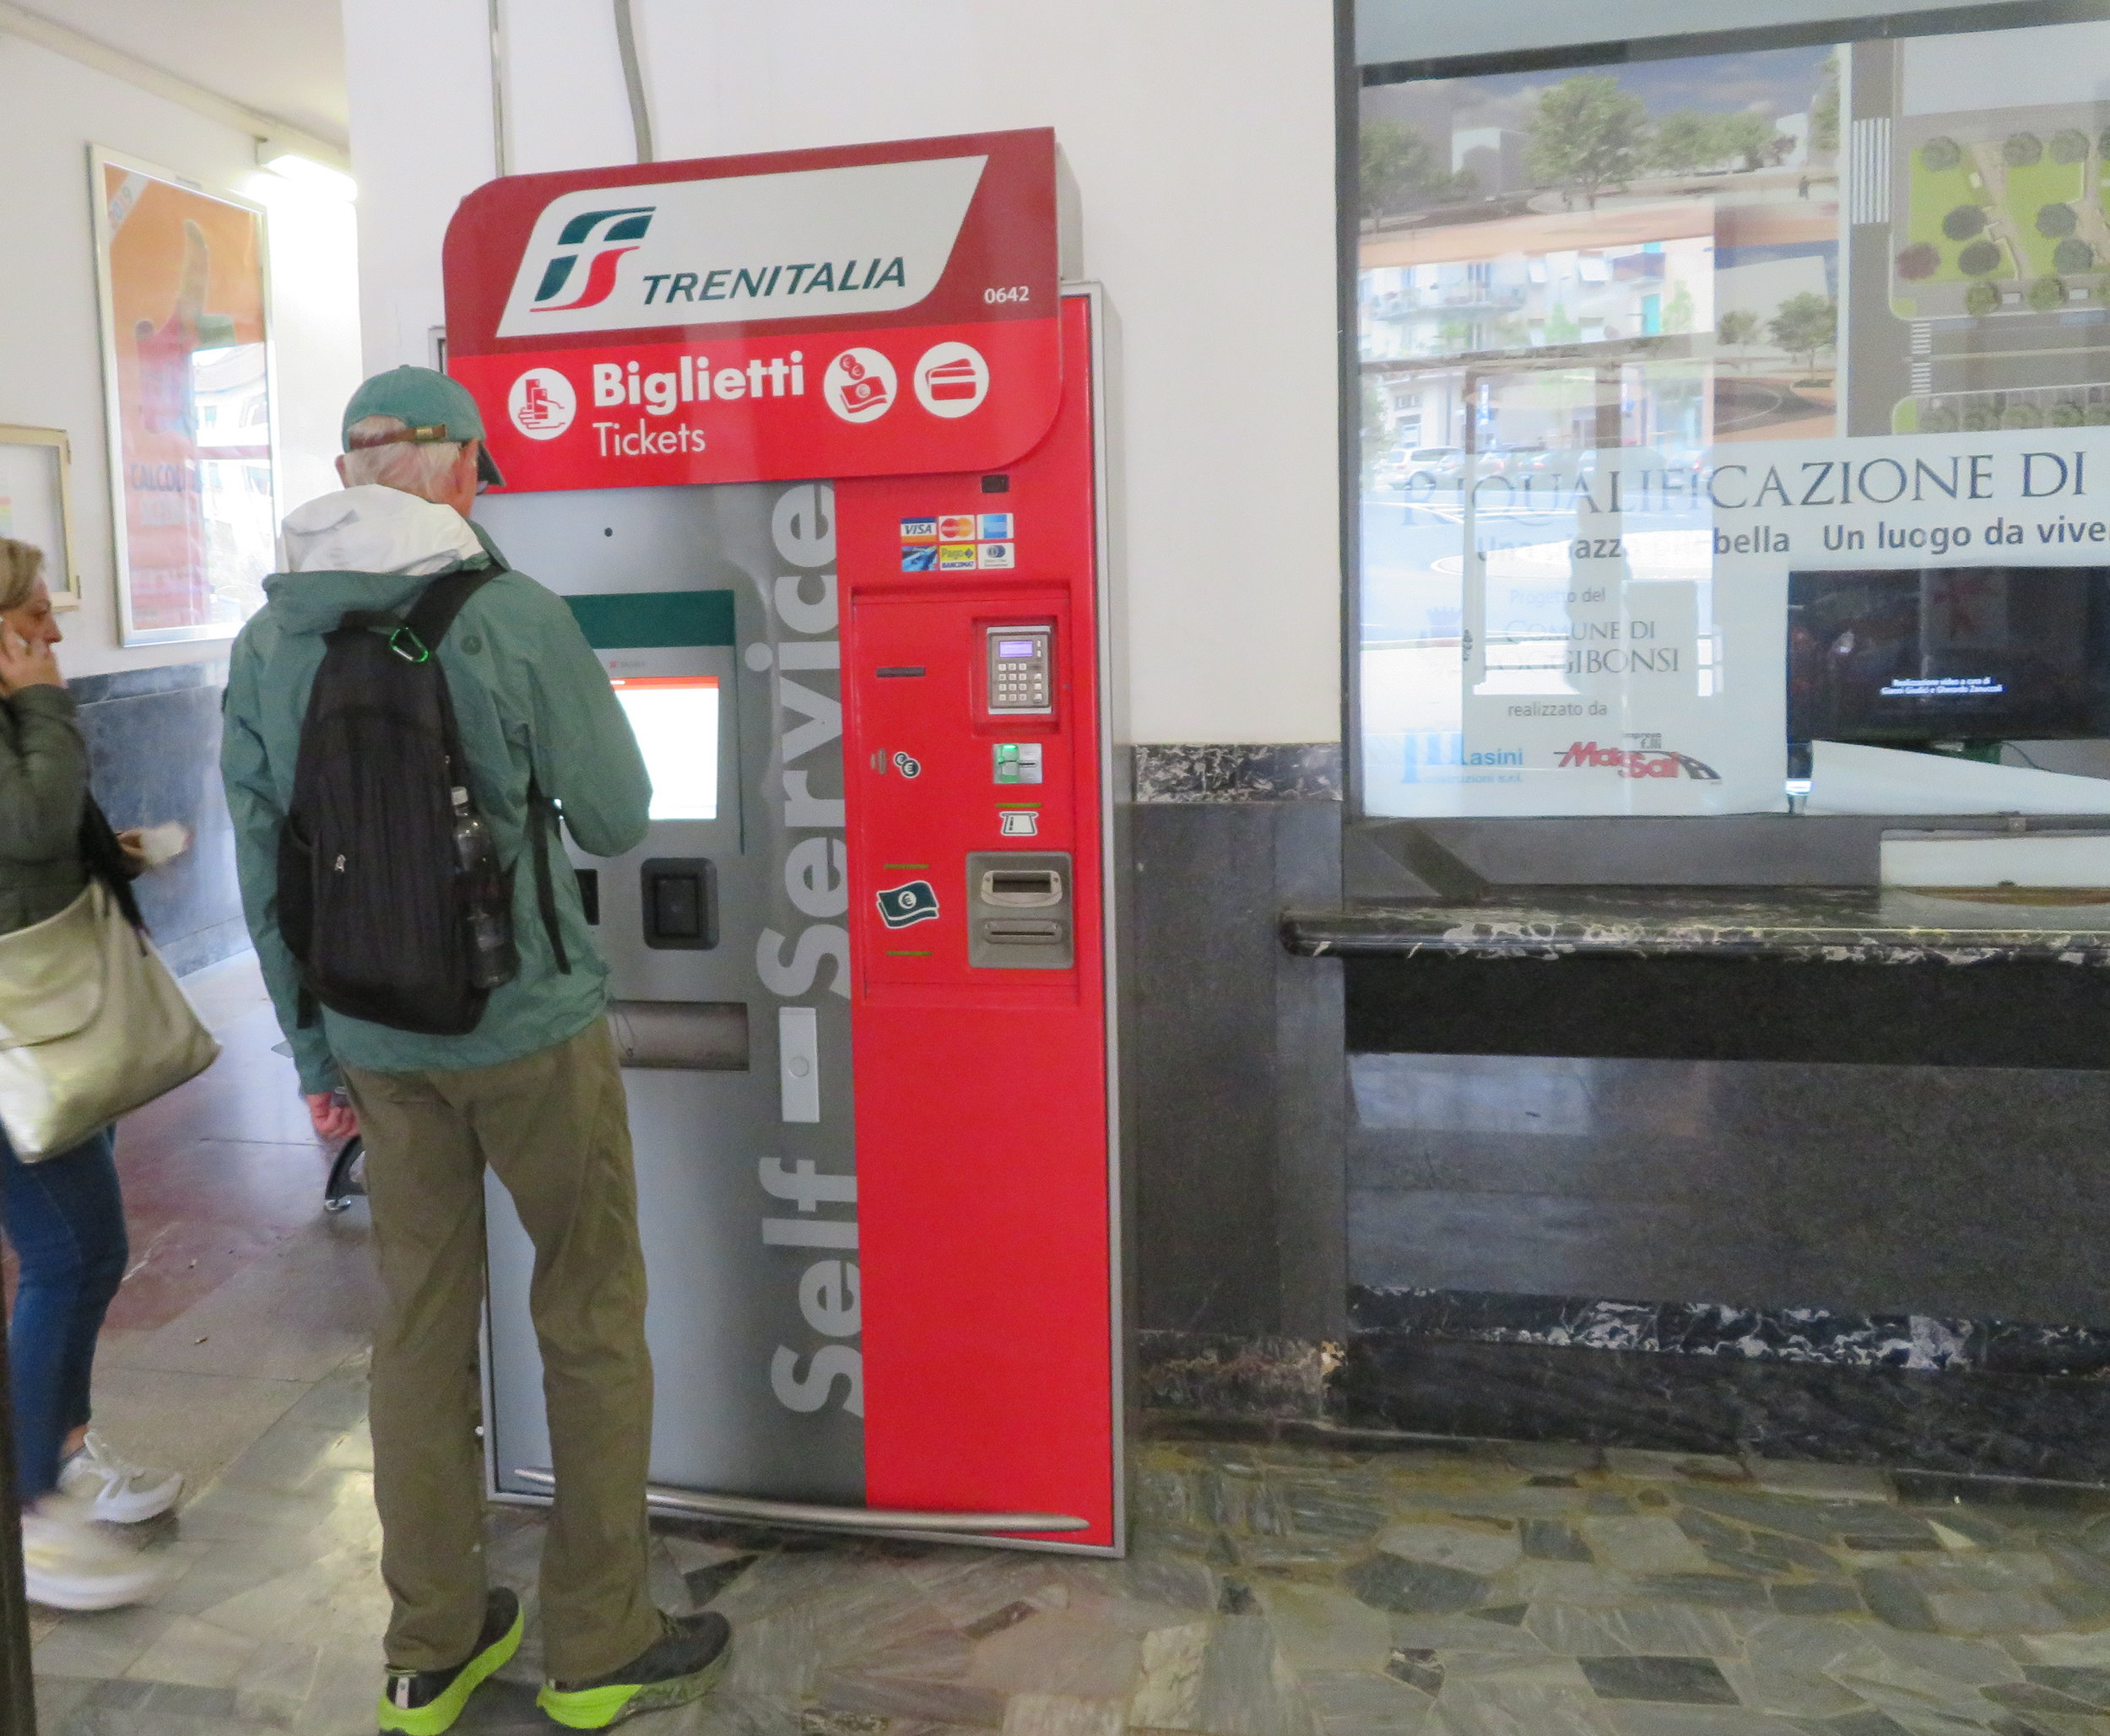 Buying tickets is easy - when there's a ticket machine